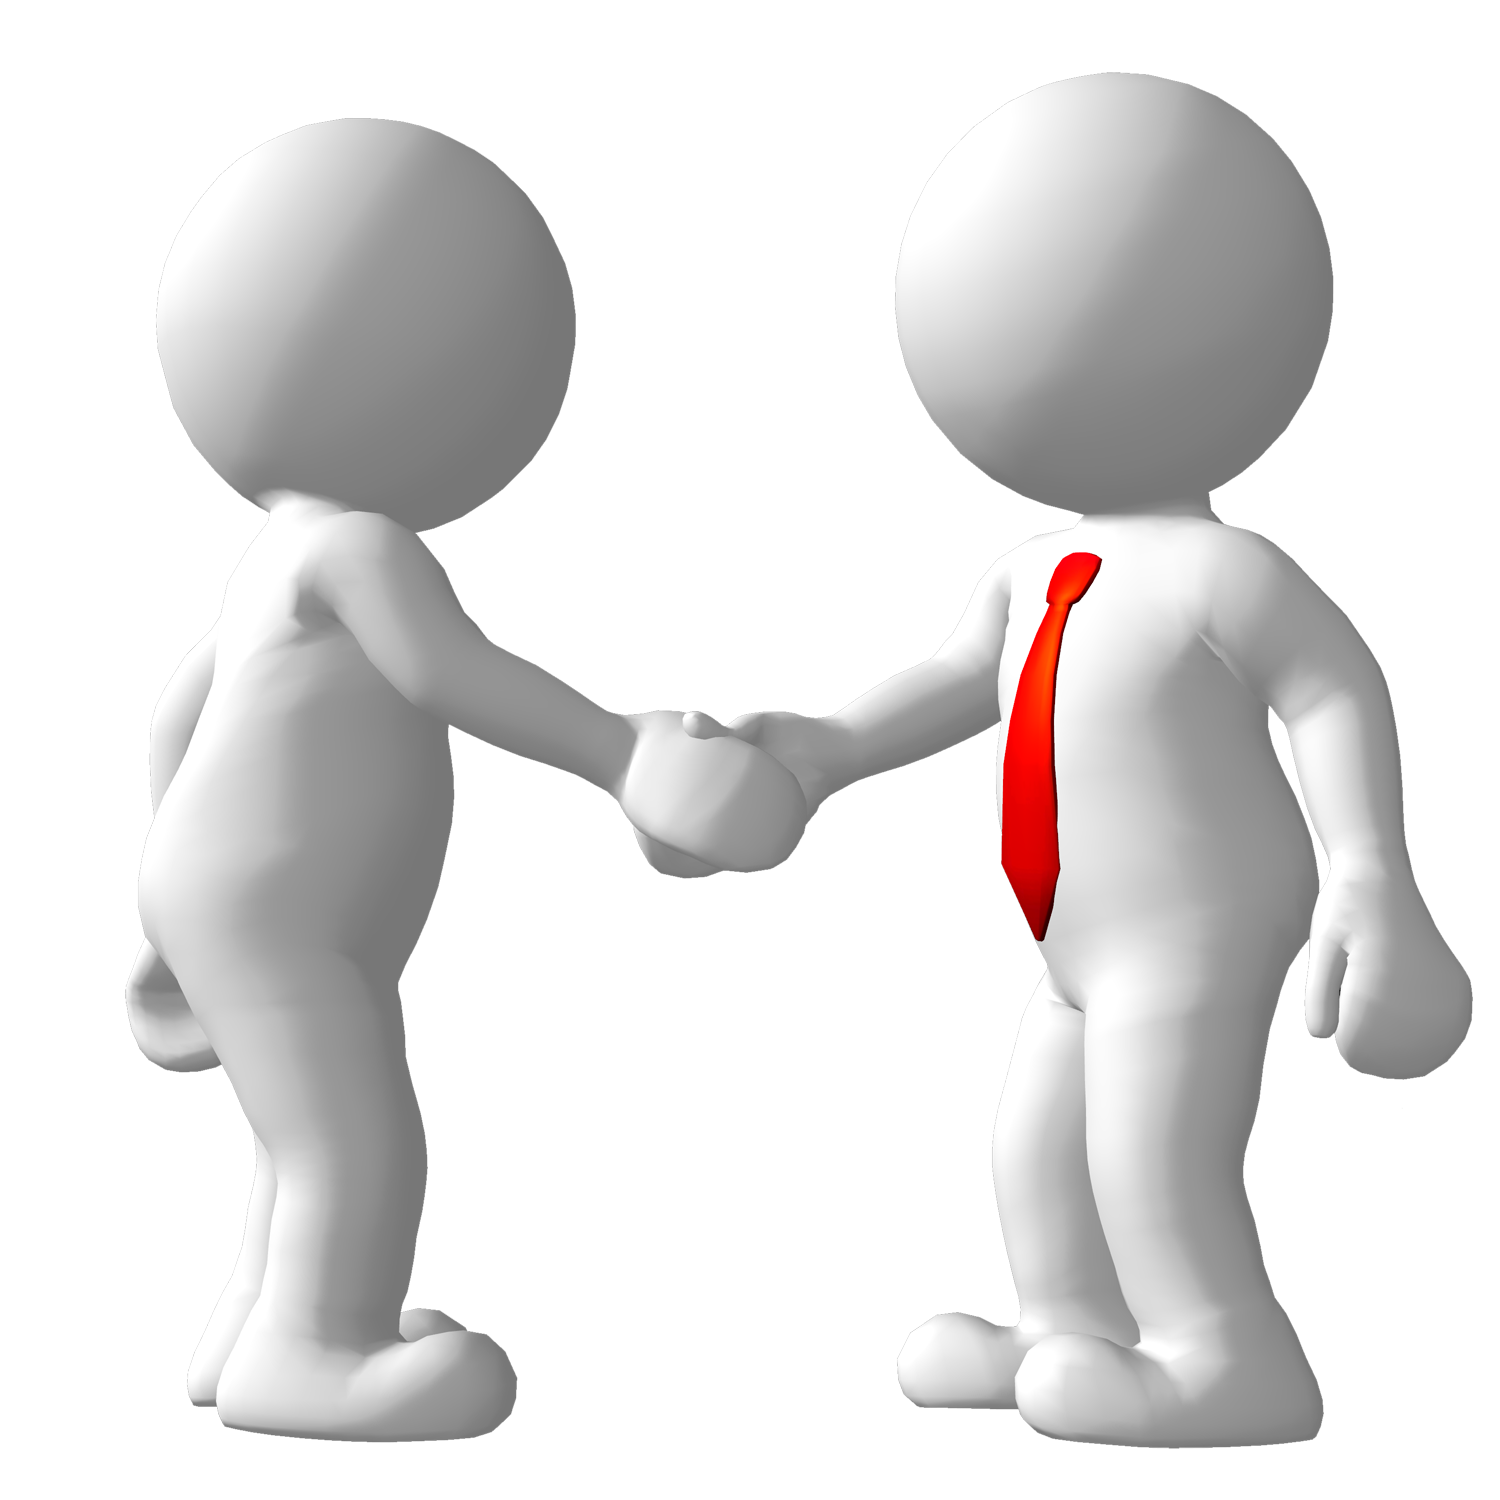 The Power of Two: What Makes A Business Partnership Work?